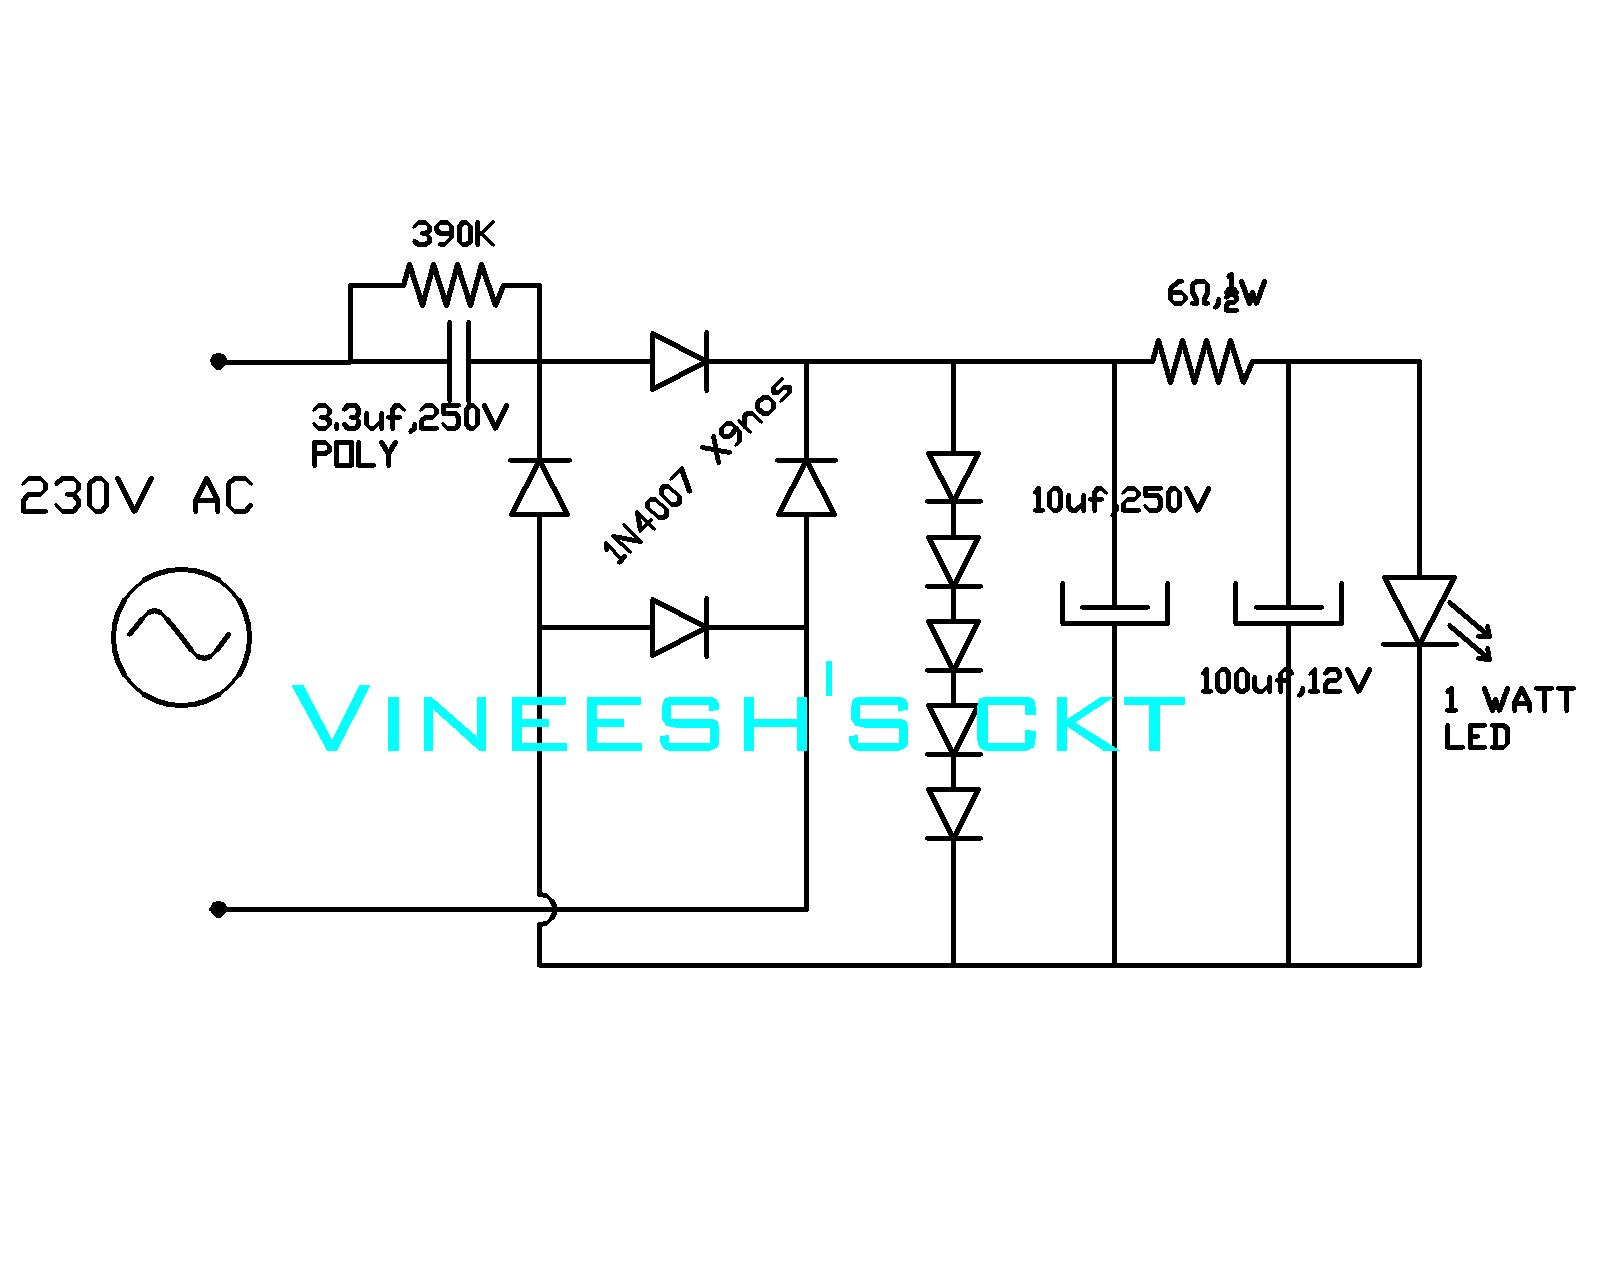 small resolution of simple circuits vineetron 230v to 1 watt led driver simple led driver circuit diagram 1 watt led driver circuit